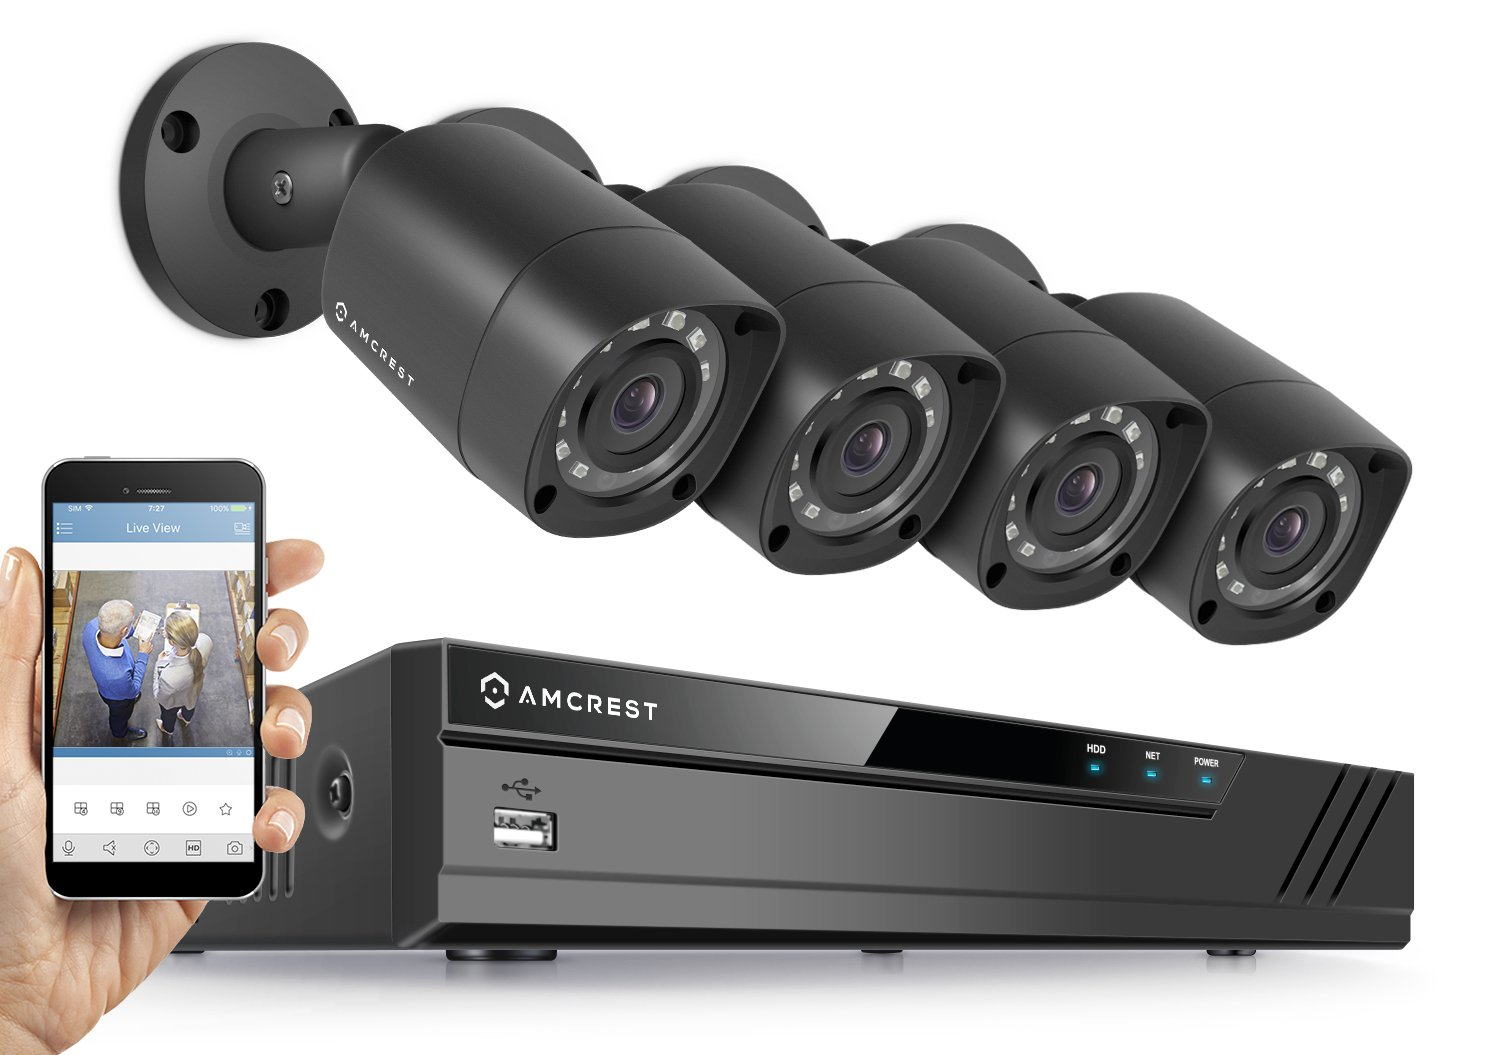 Amcrest HD 1080P-Lite 8CH Video Security Camera System w/ Four 1280TVL (720P) IP67 Outdoor Cameras, 65ft Night Vision, HDD Not Included, Supports AHD, CVI, TVI, 960H & IP Cameras (AMDVTENL8-4B-B)